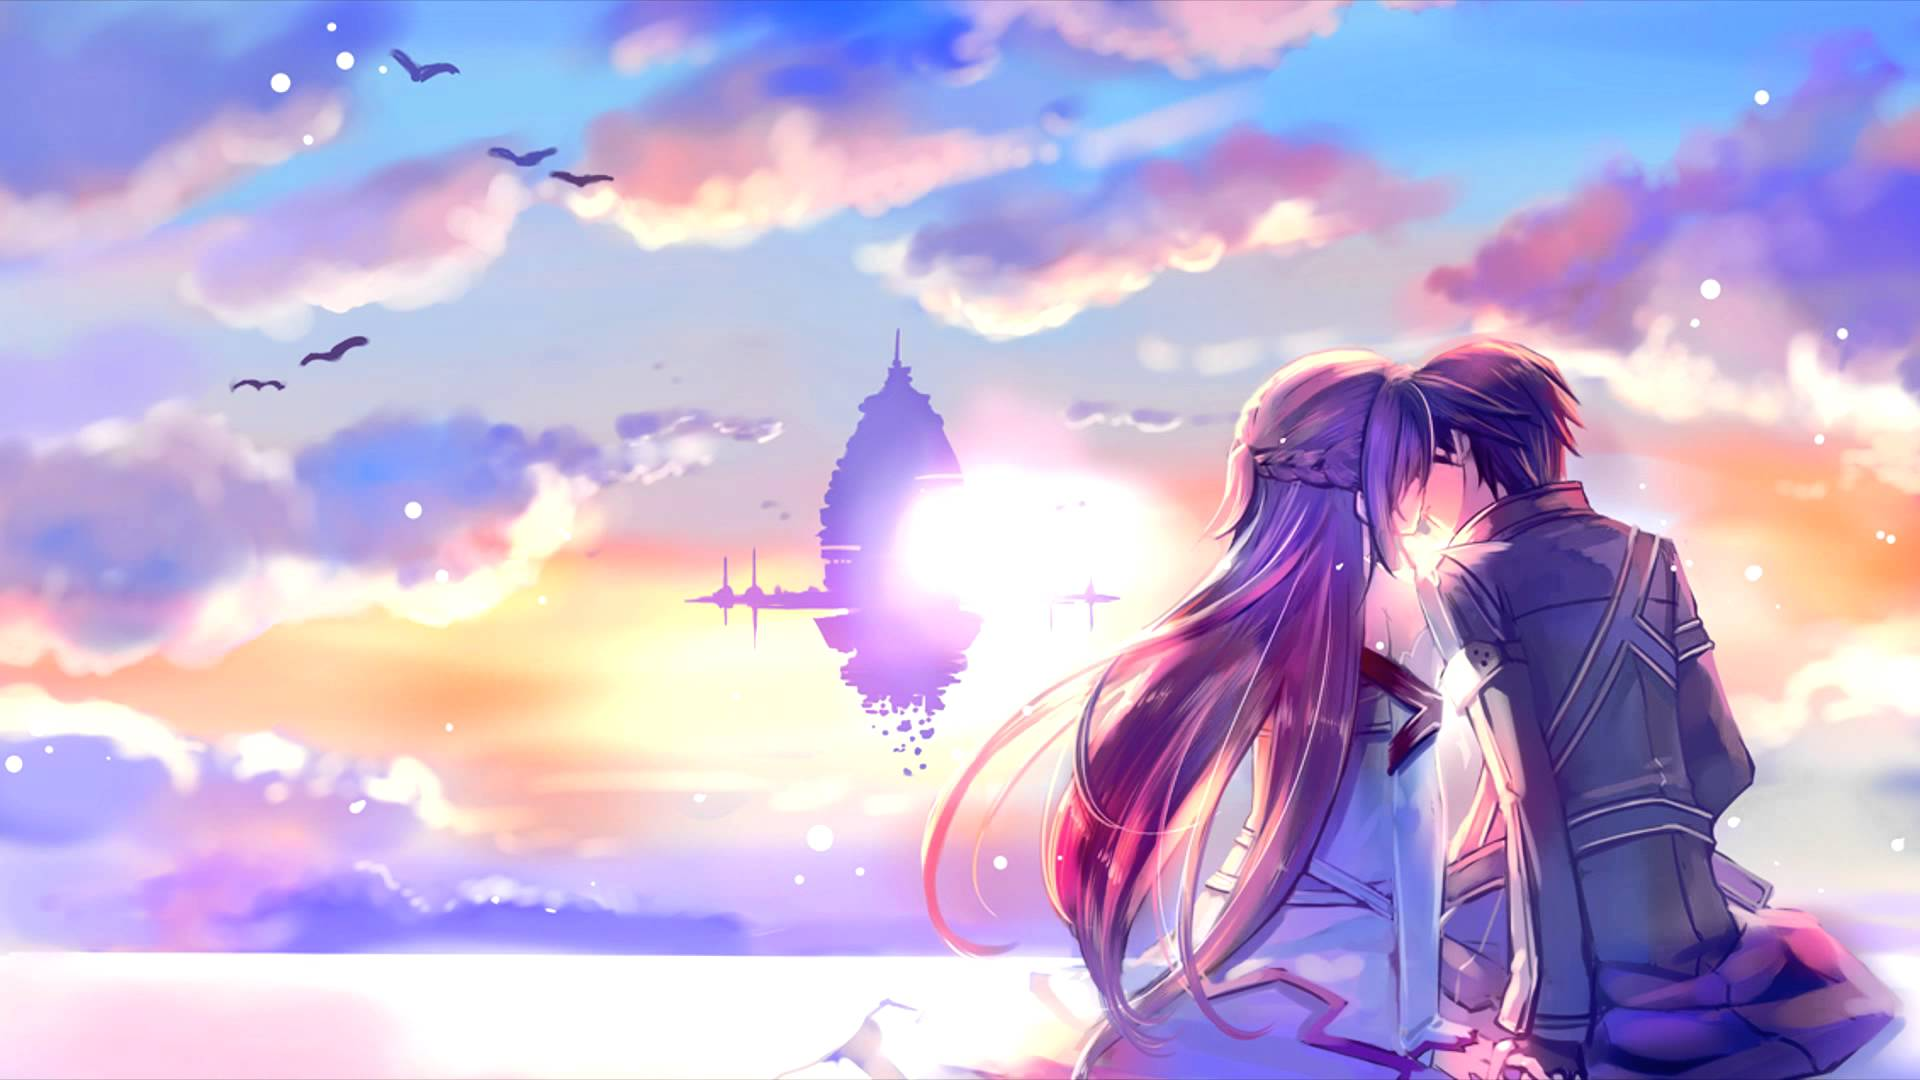 Romantic Asuna And Kirito Sword Art Online Wallpaper